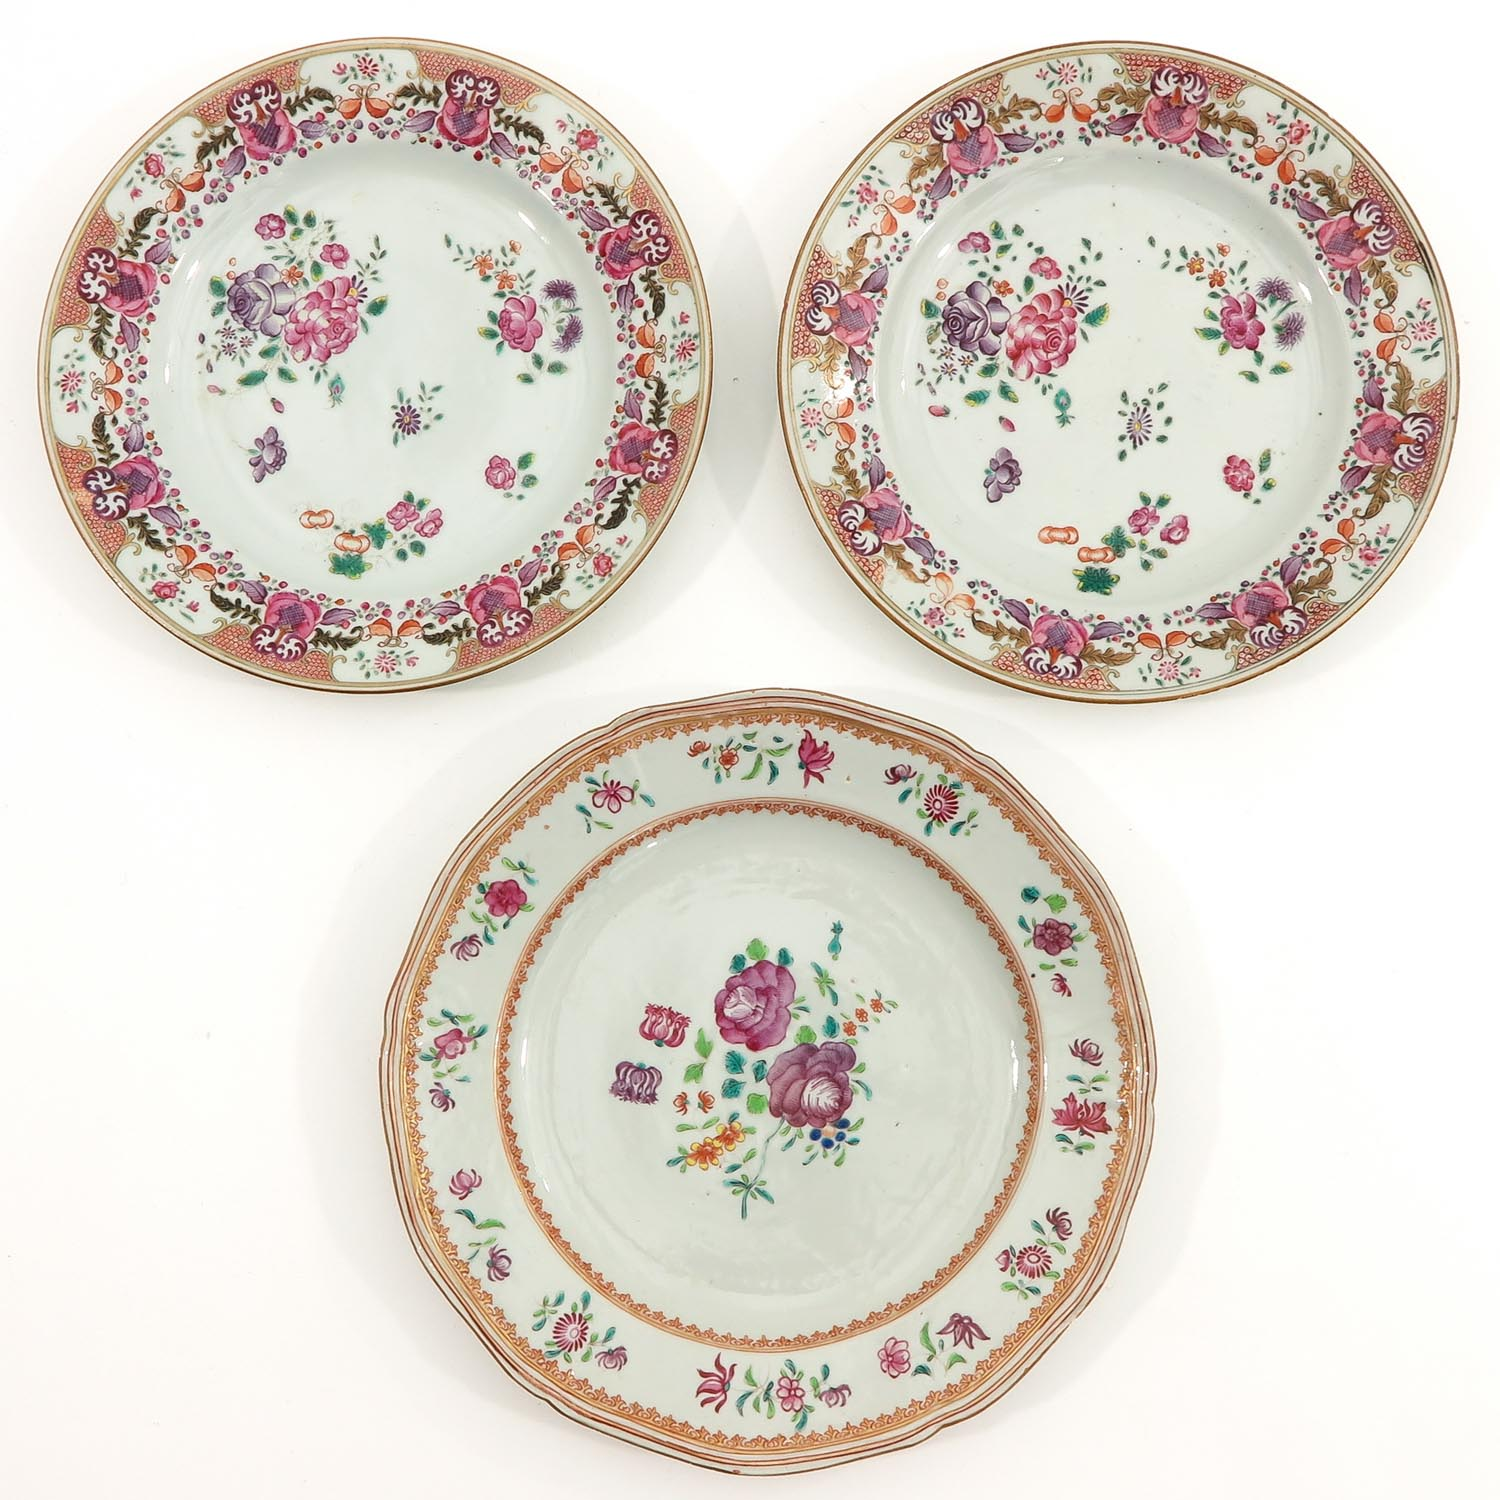 A Collection of 5 Famille Rose Plates - Image 5 of 10